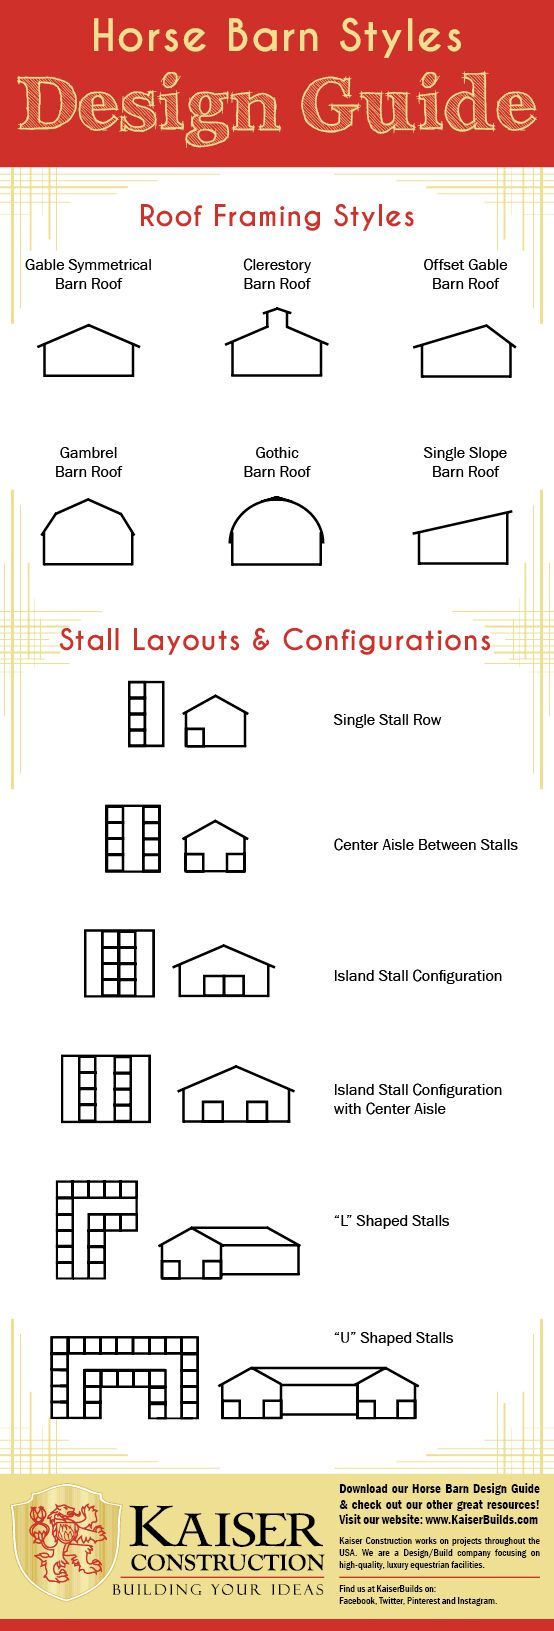 "Building a Barn for your horses? Here is a great little barn layout and style guide to help get you started!    Looking for more tips and advice? Visit KaiserBuilds.com to learn how we can help ""build your ideas."""